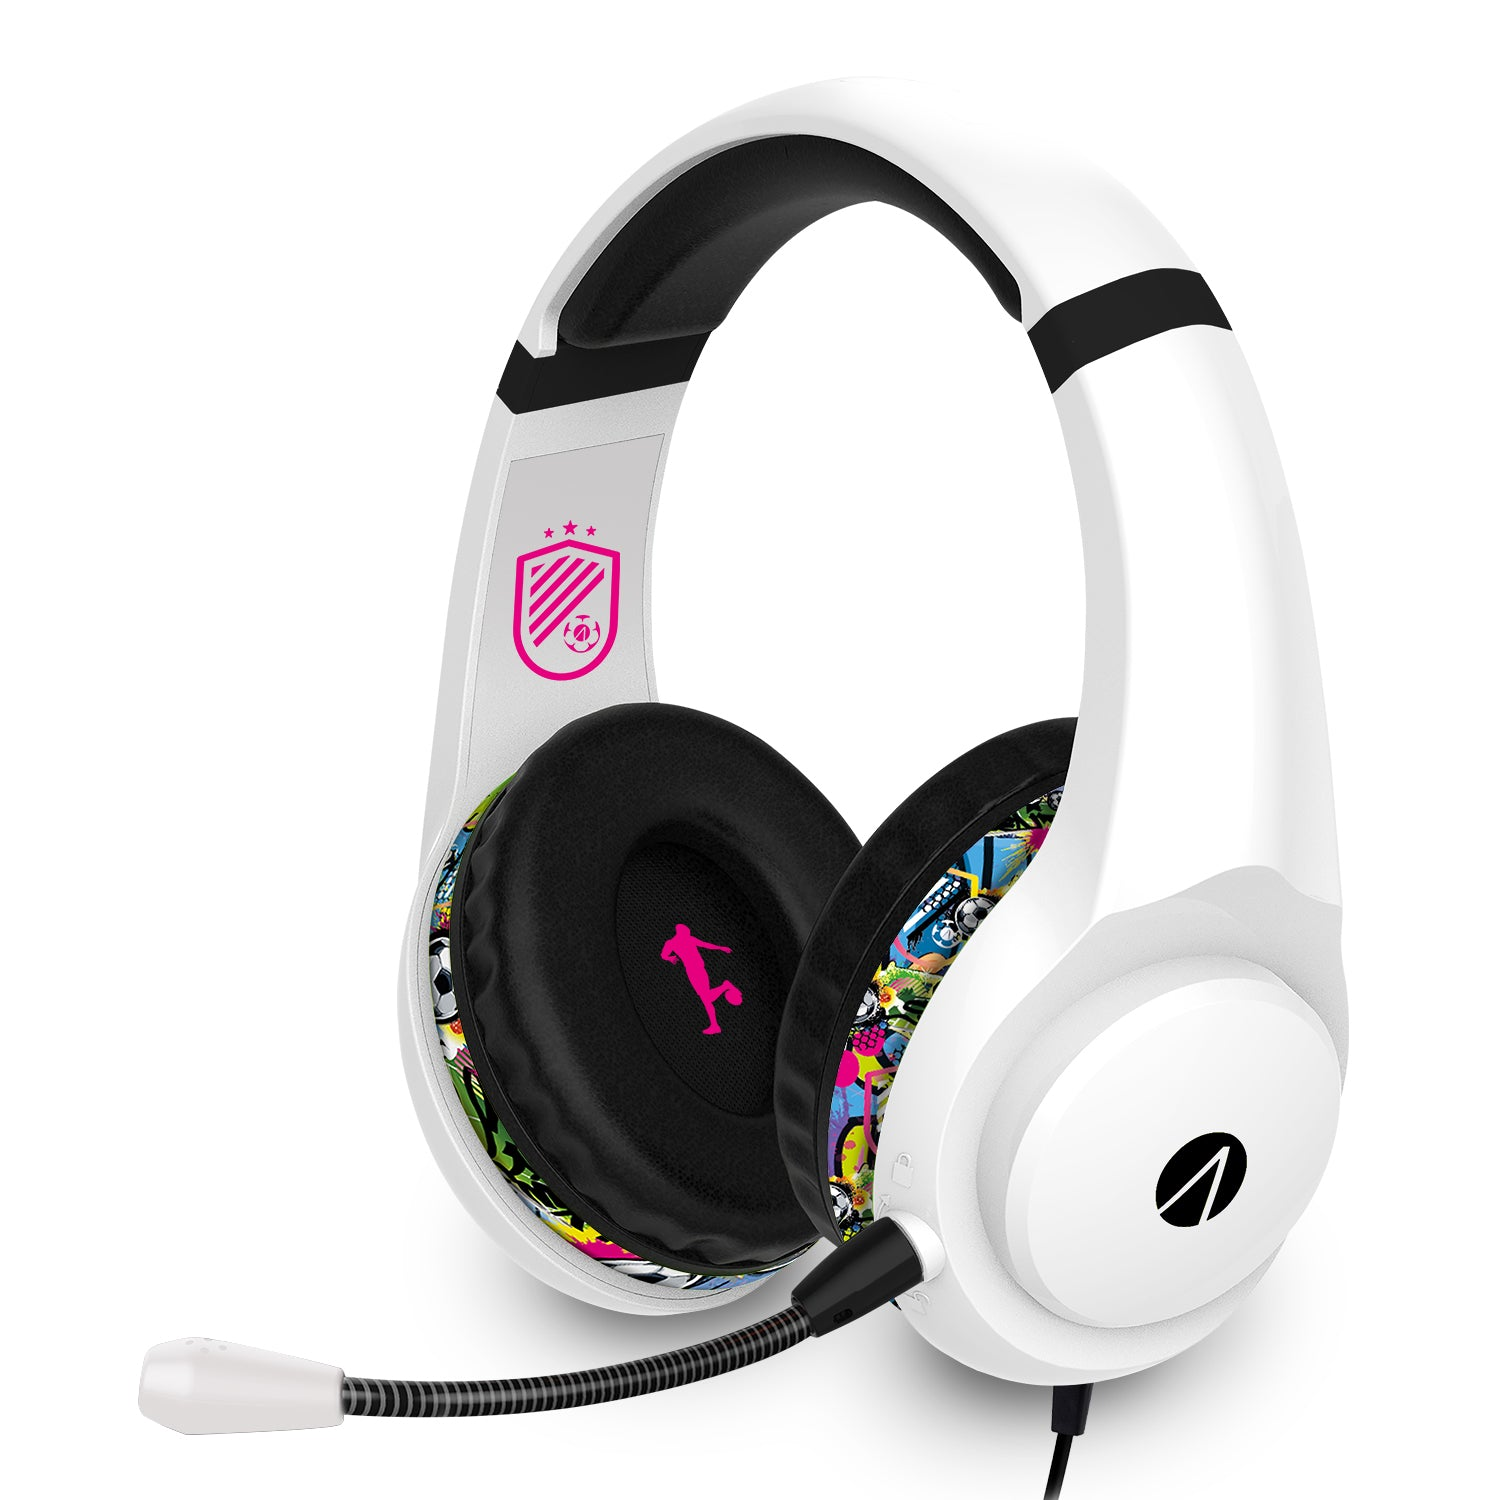 STEALTH Street Gaming Headset with Stand (White with Black/Graffiti stand) - Xbox One